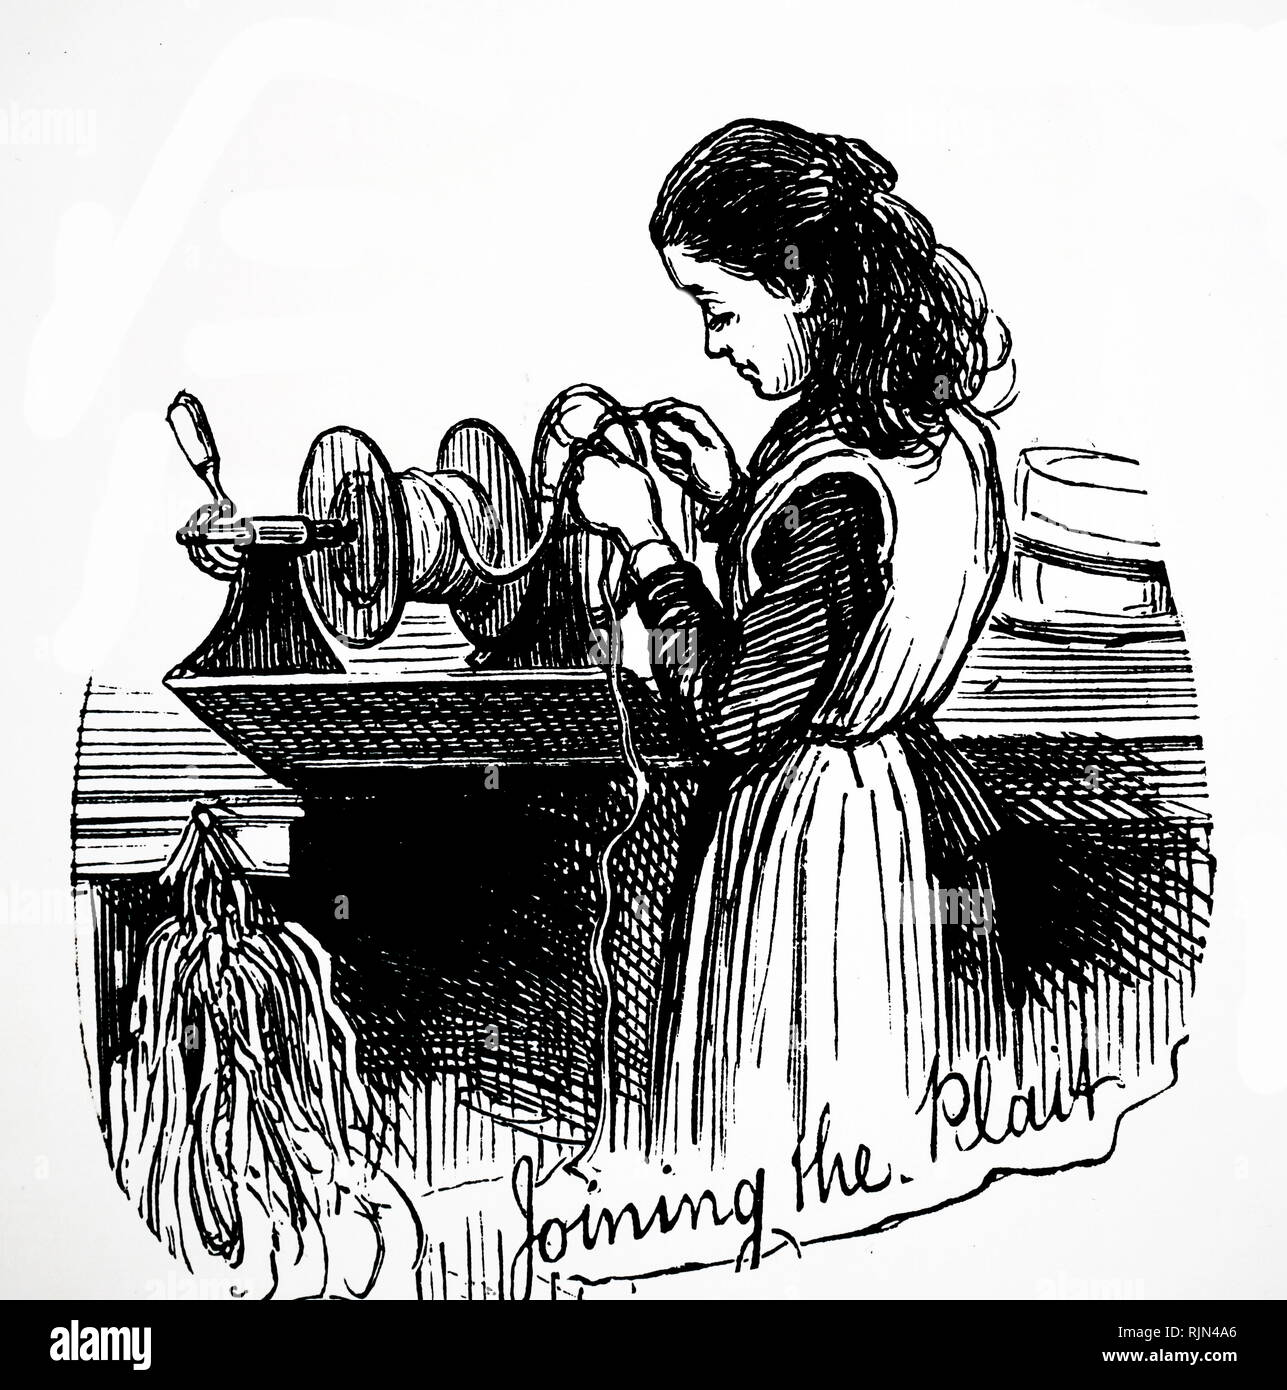 Illustration showing Joining straw plains into long lengths for use in the Luton hat, trade 1878 - Stock Image